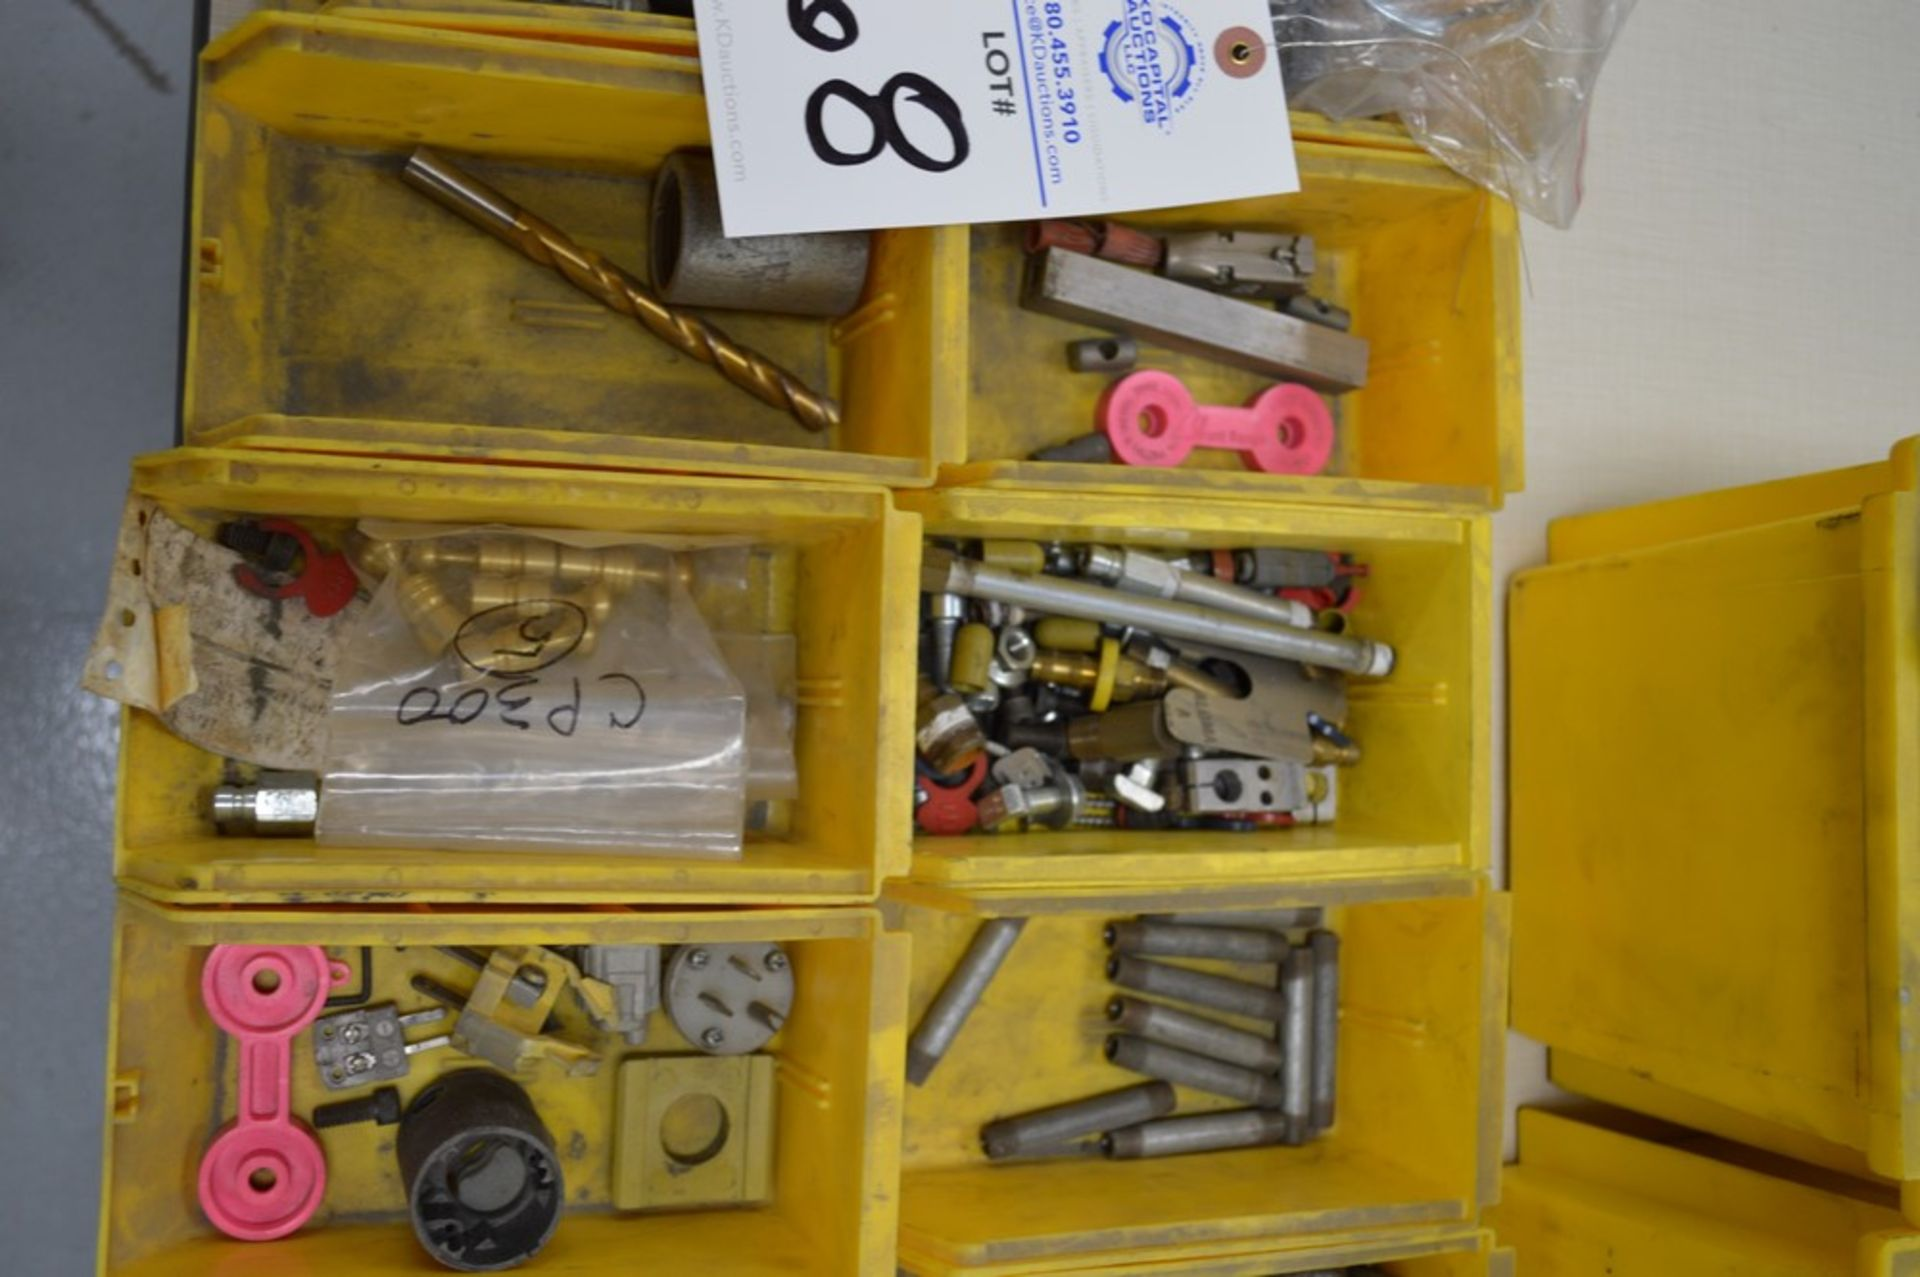 Air connectors, dual threaded connectors, chain, misc hardware - Image 3 of 4